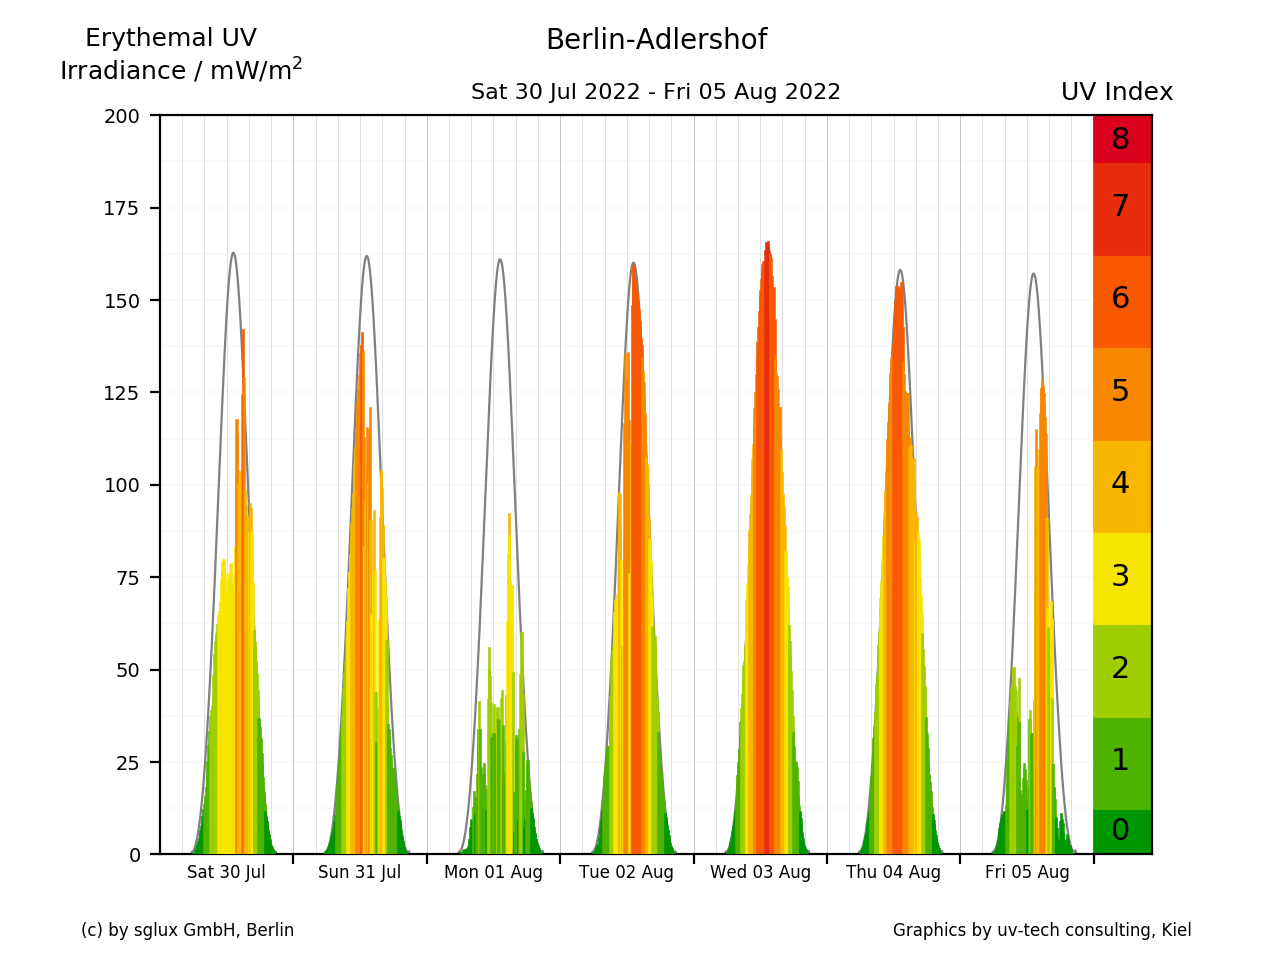 UV-Index values for last 7 days in Berlin-Adlershof